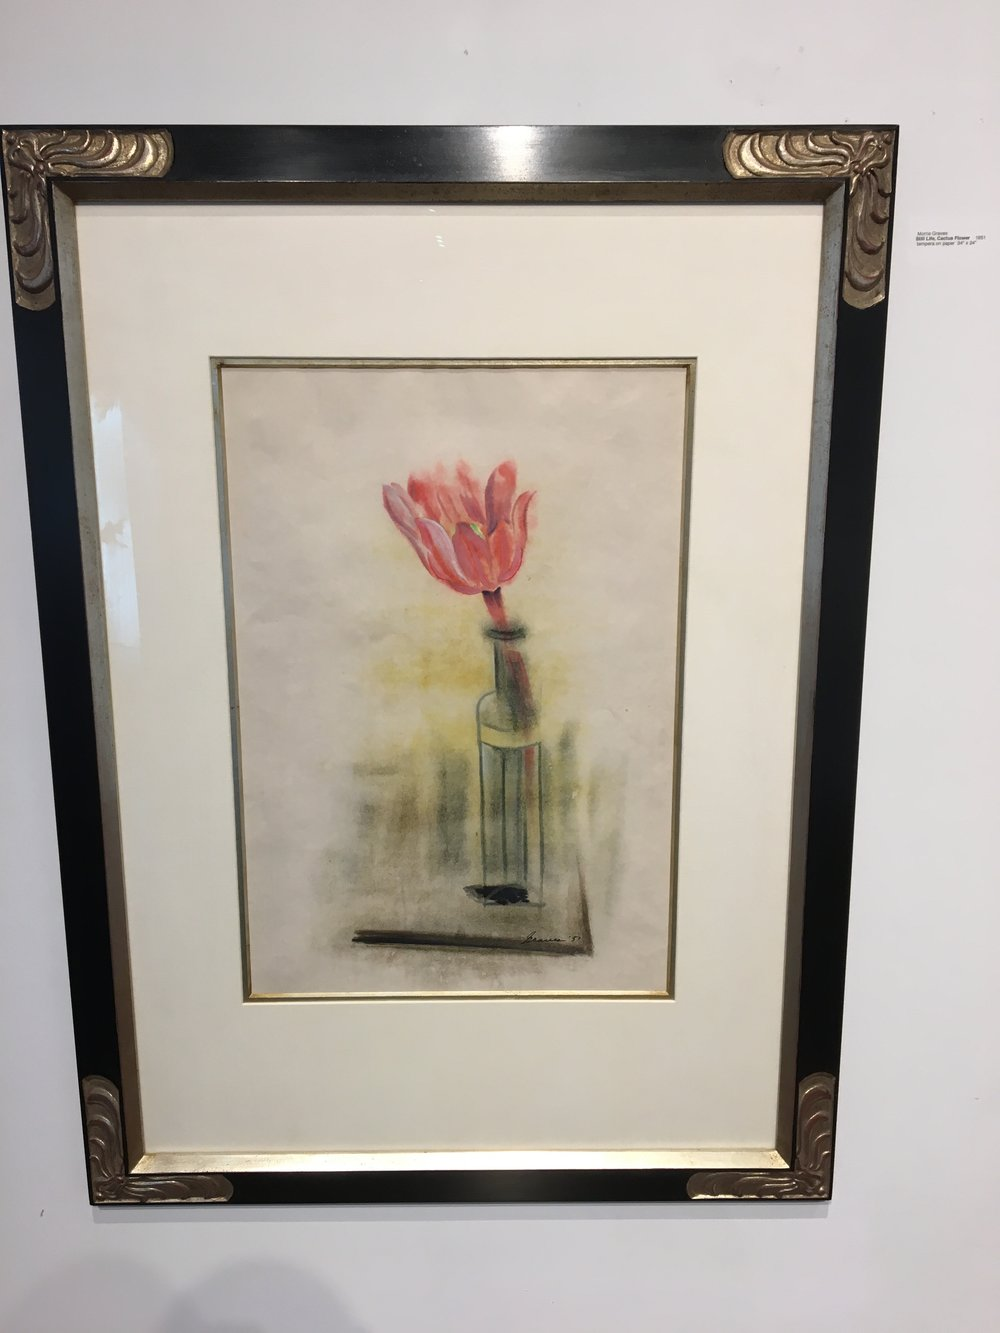 Still life with Cactus Flower painting by Morris Graves.